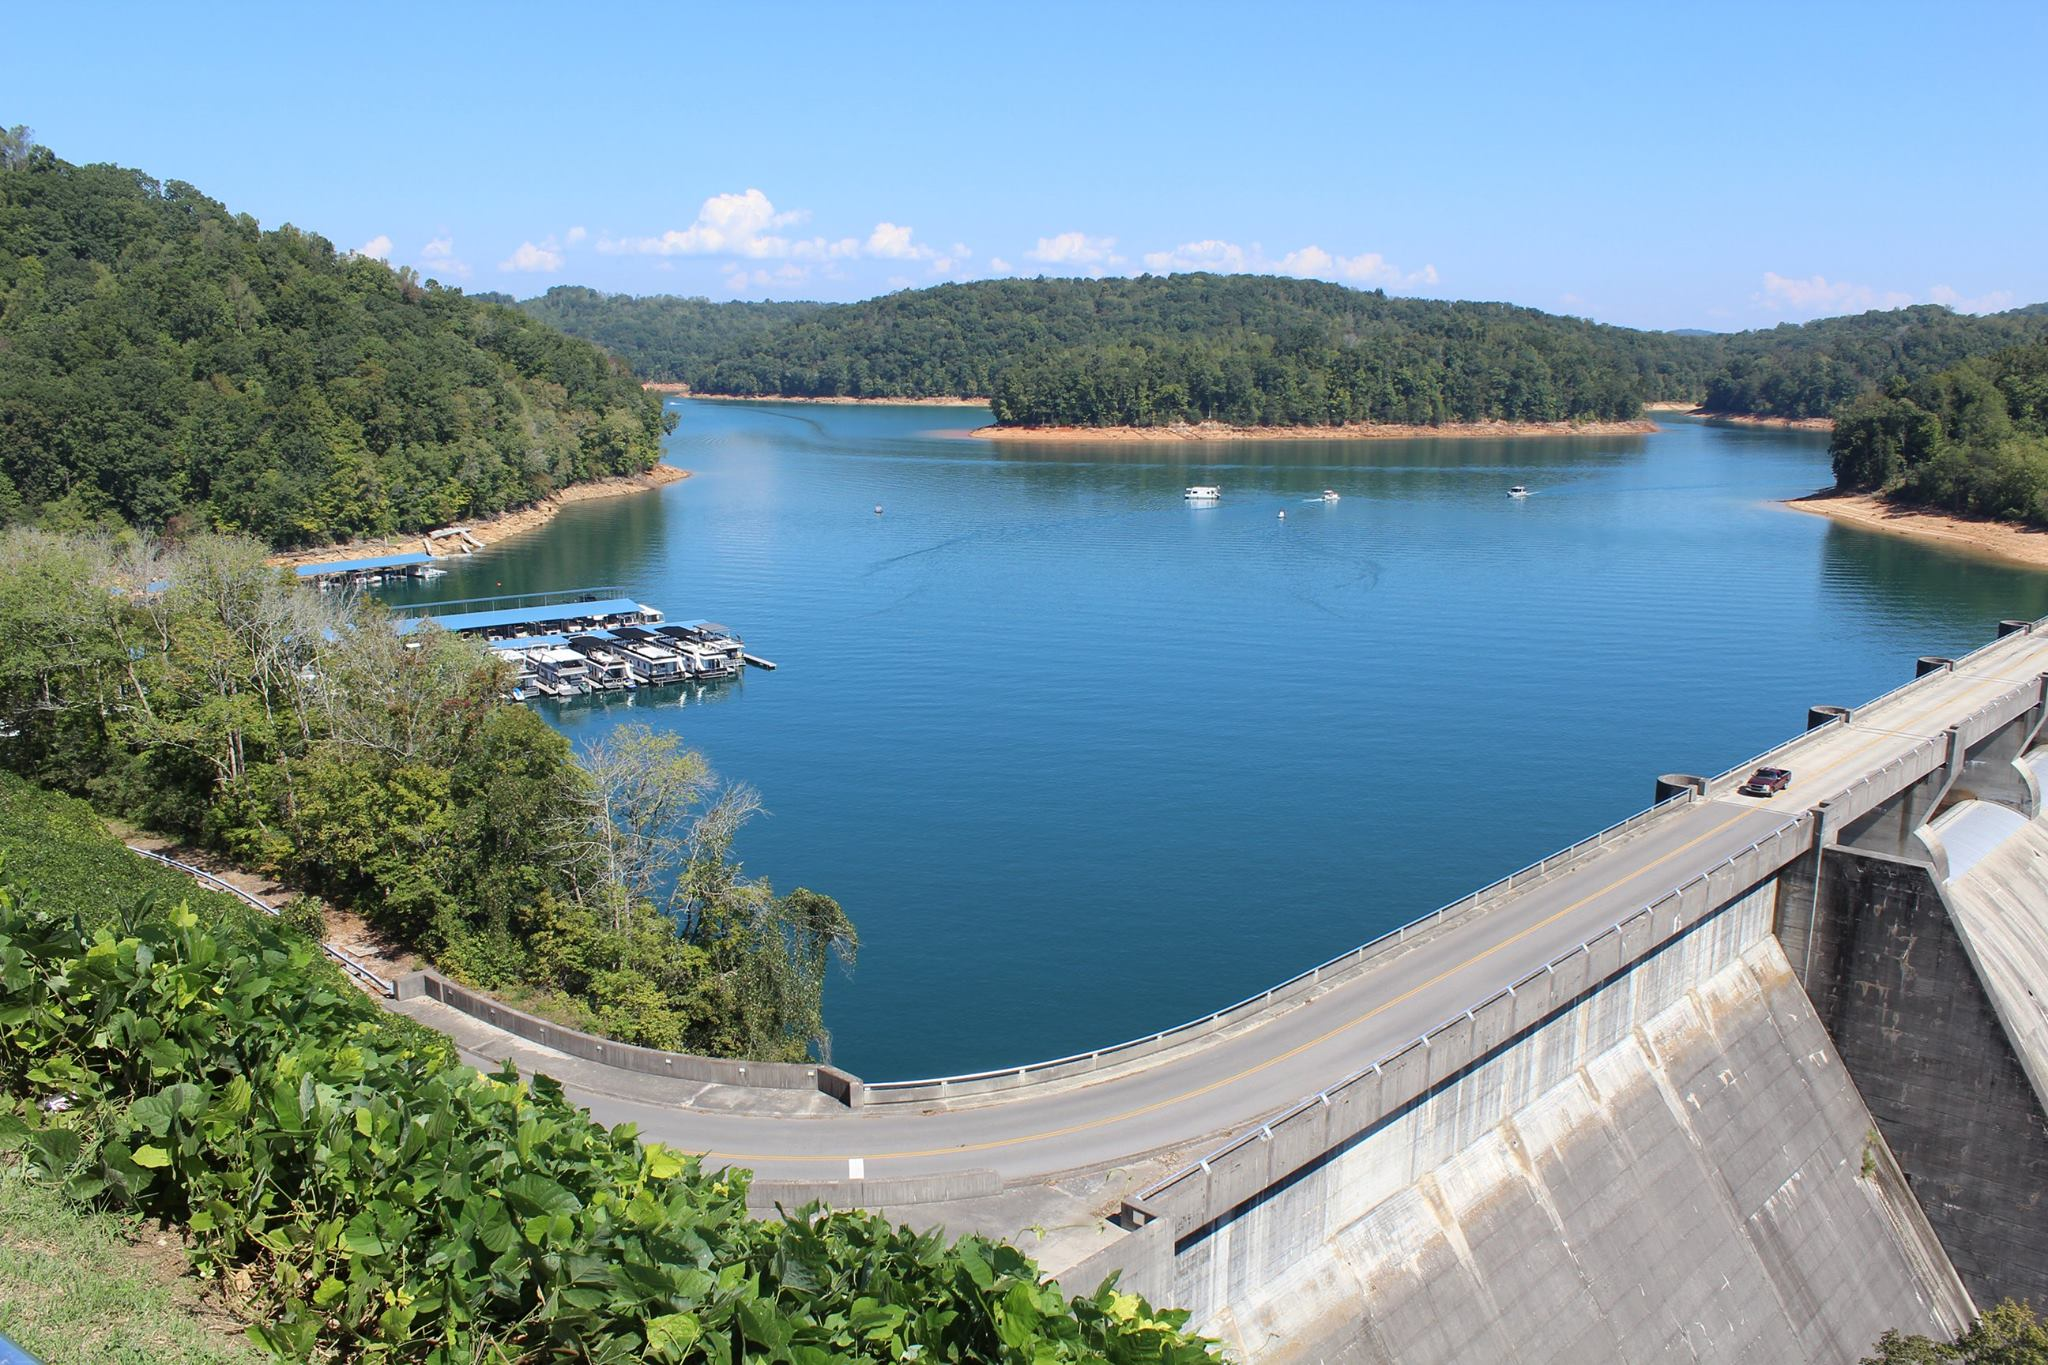 NORRIS DAM STATE PARK   Rocky Top, TN  Construction of Norris Dam began in 1933 as the first project by the Tennessee Valley Authority, a Great Depression-era entity created by the federal government to control flooding and bring electricity and economic development to the Tennessee Valley.